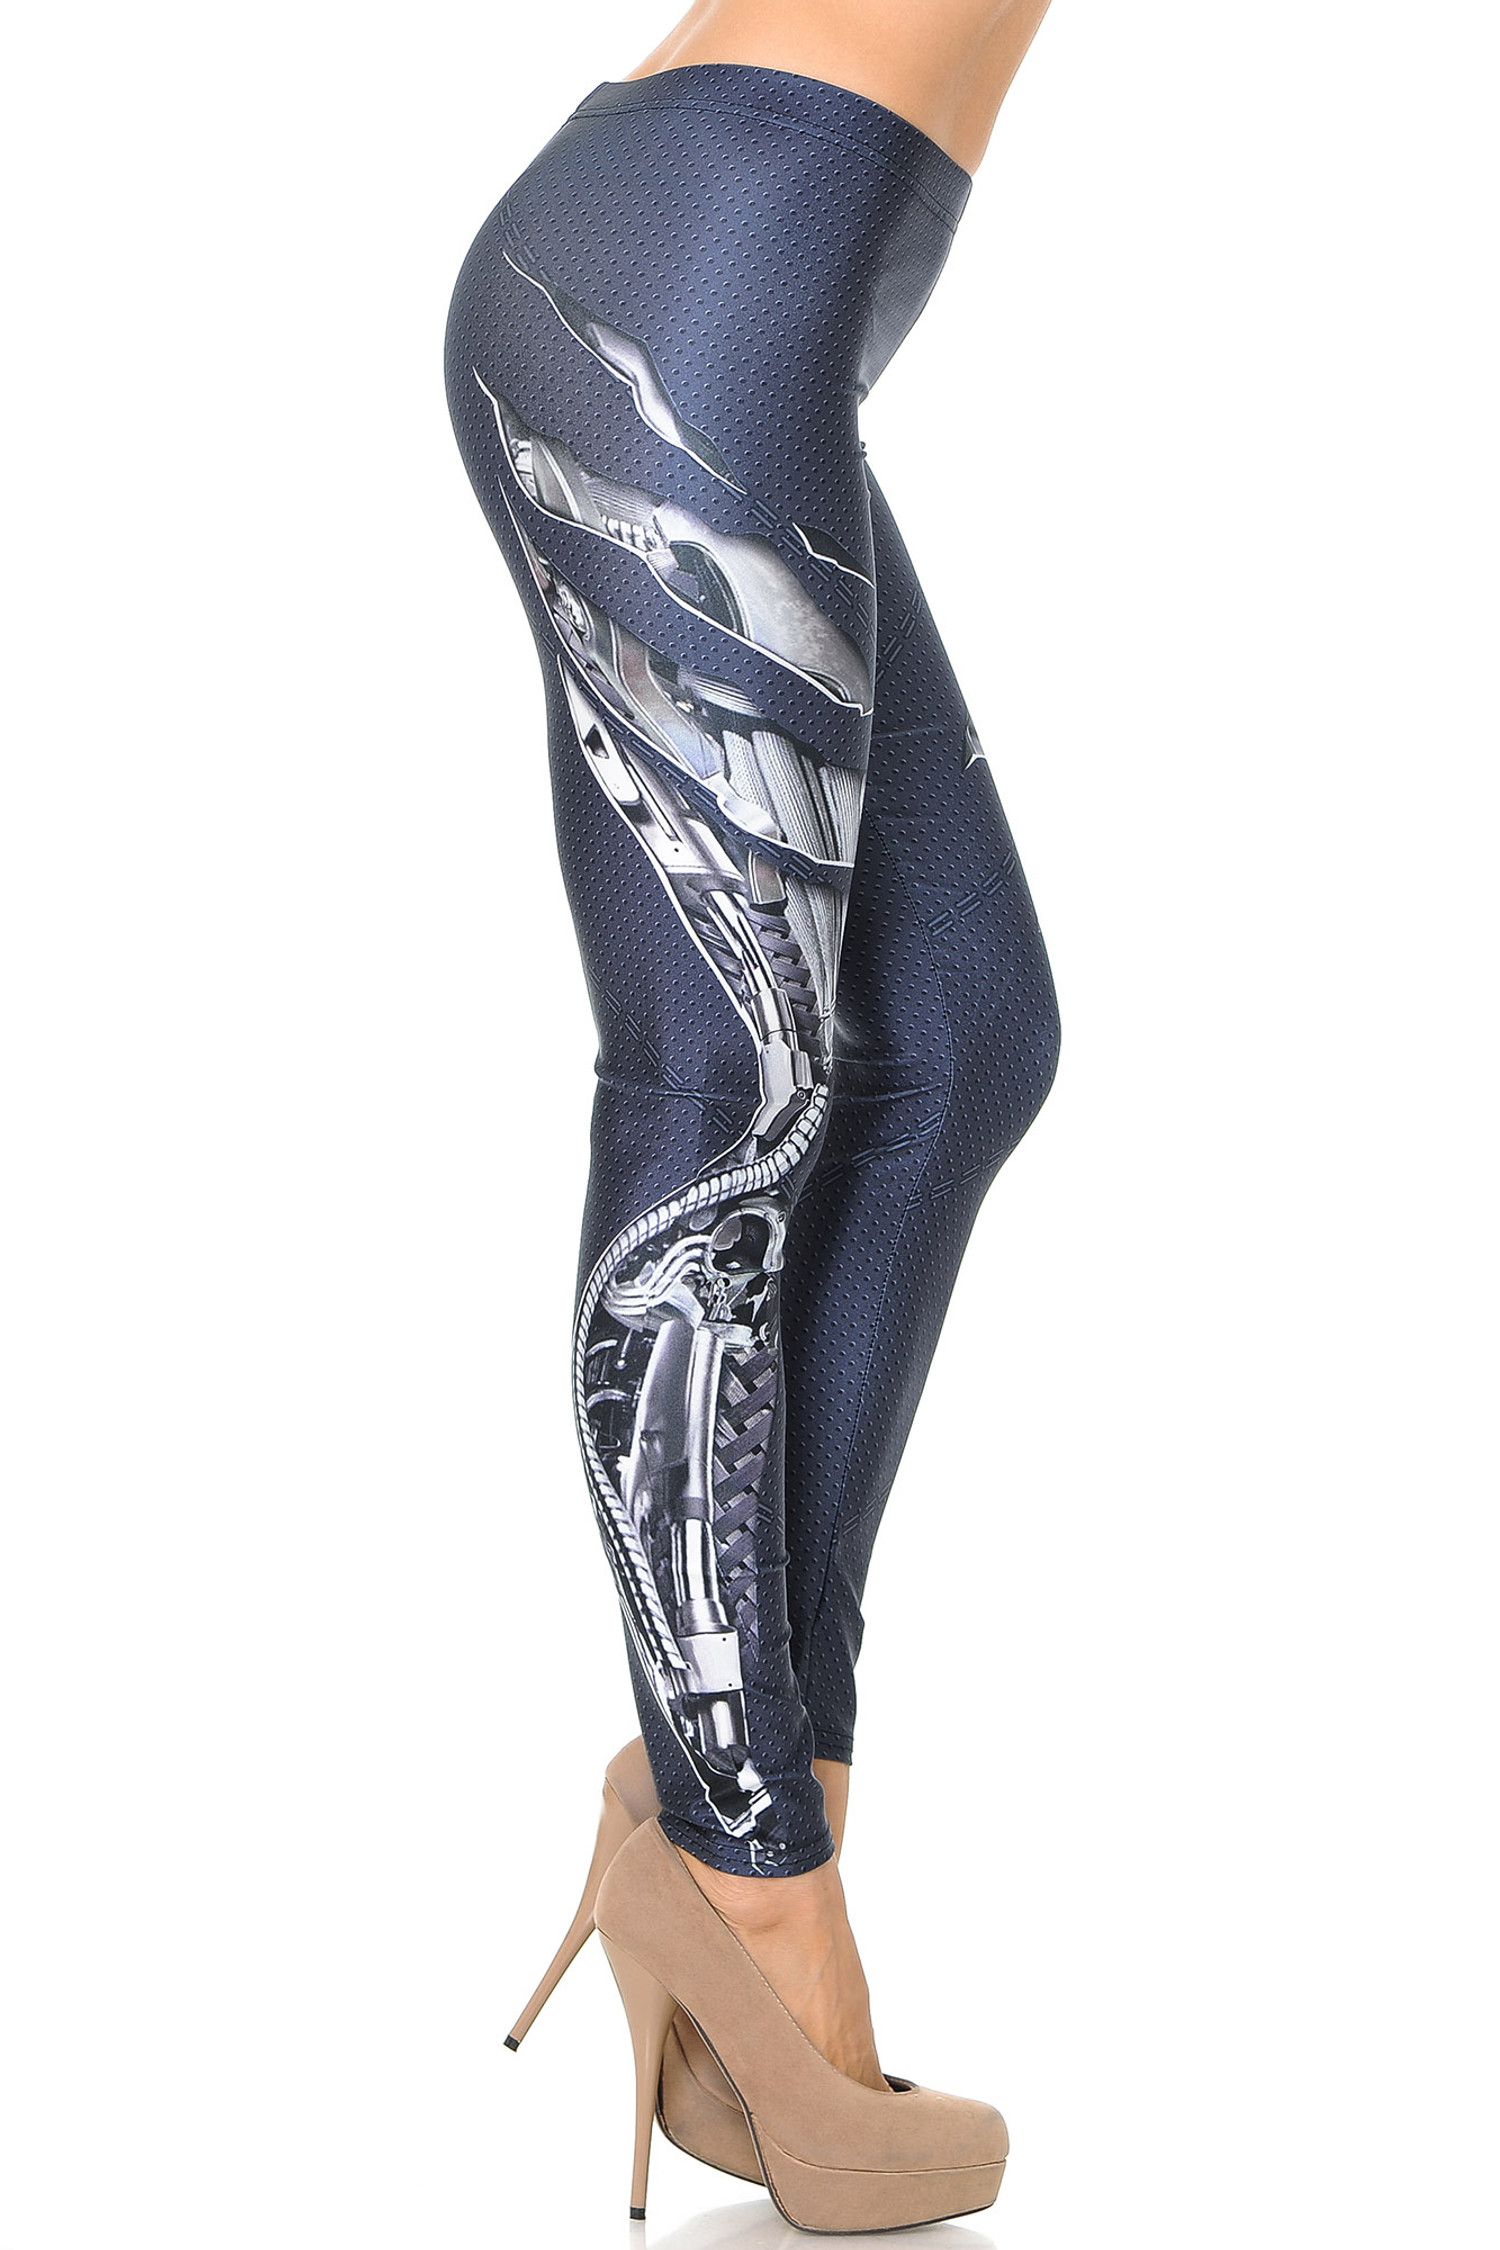 Premium Graphic Mechanized Soldier Leggings